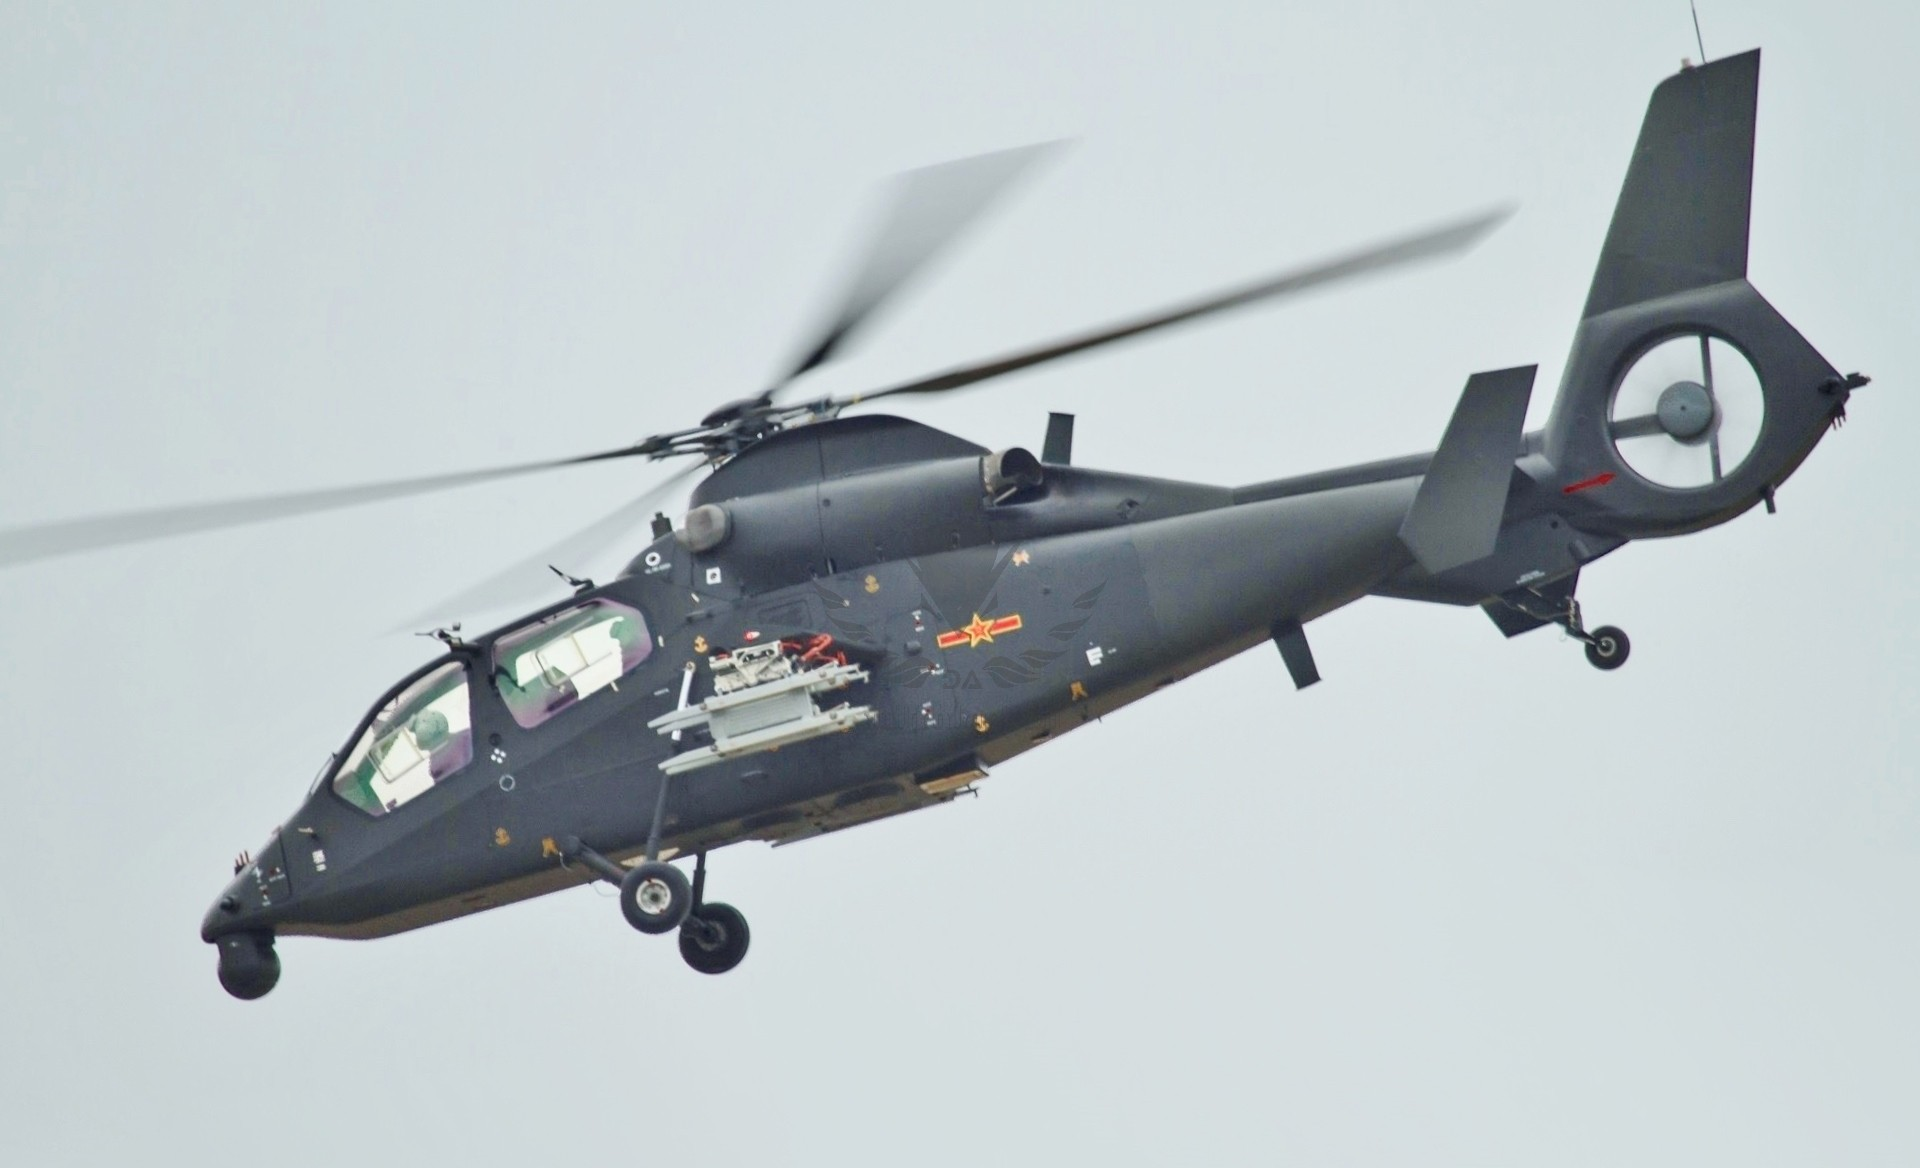 Harbin_Z-19_helicopter_(cropped)-1.jpg